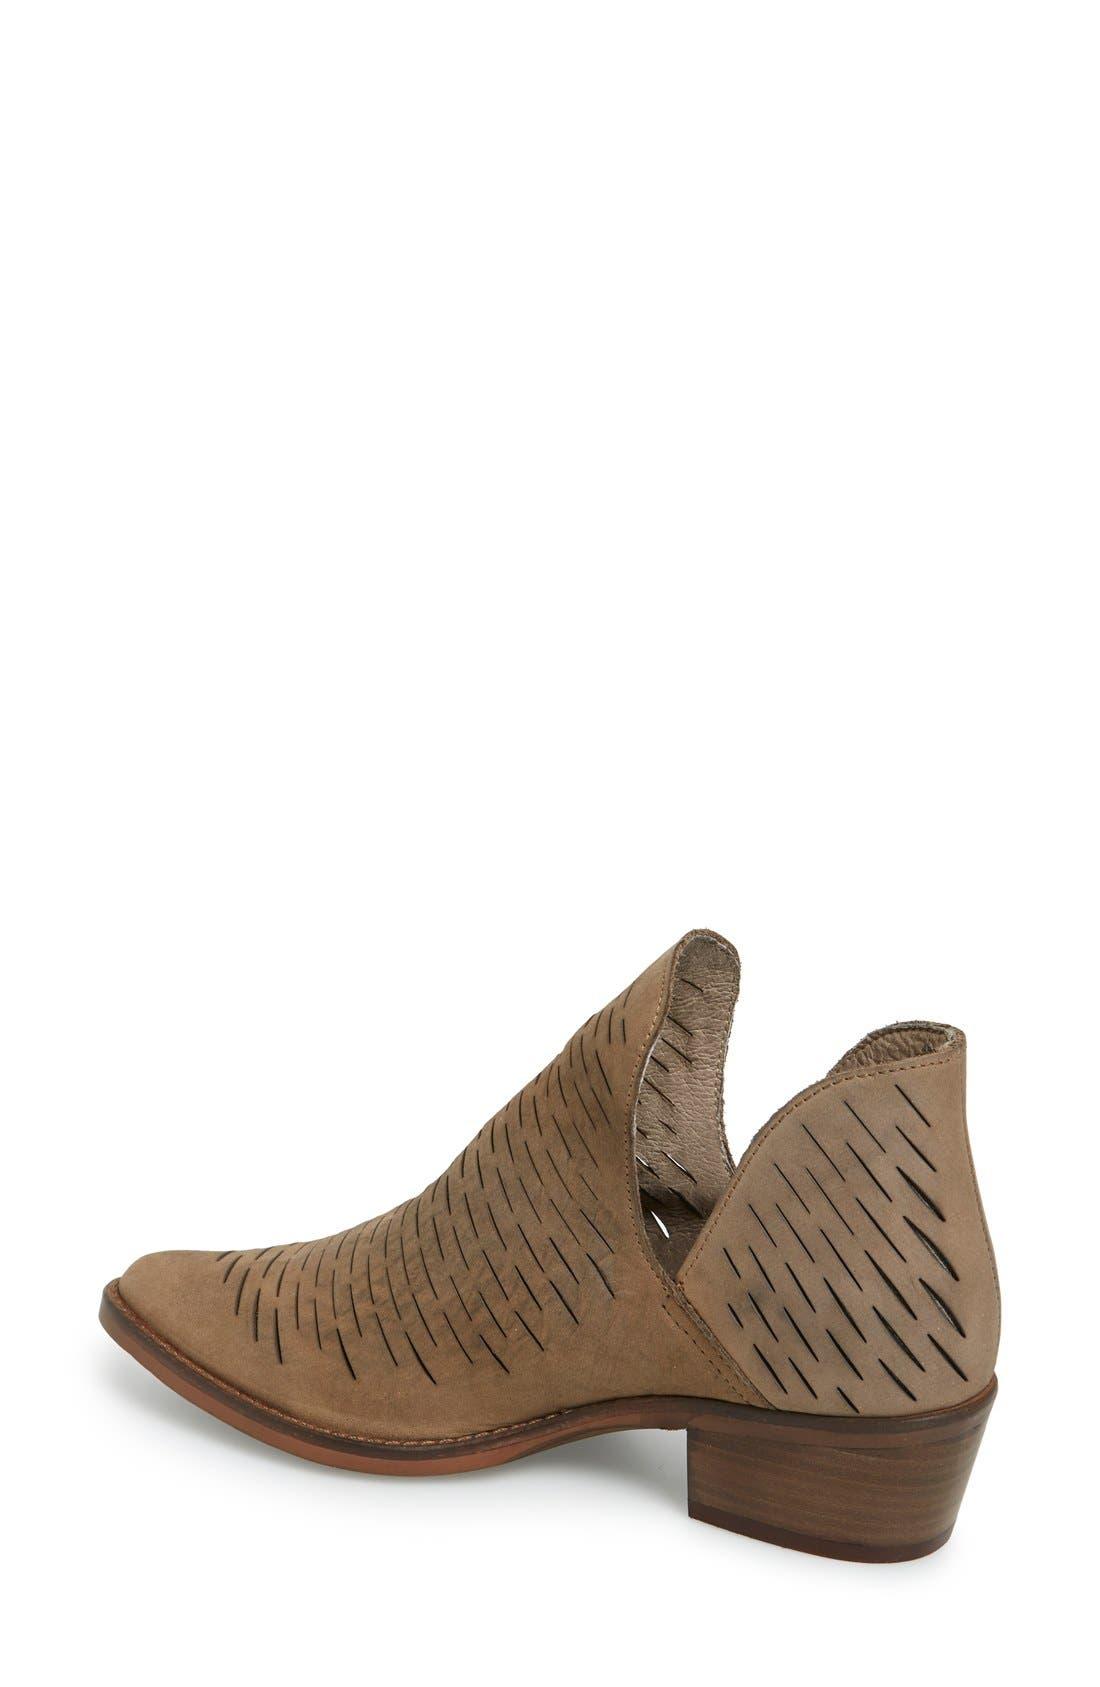 'Arowe' Perforated Bootie,                             Alternate thumbnail 4, color,                             020